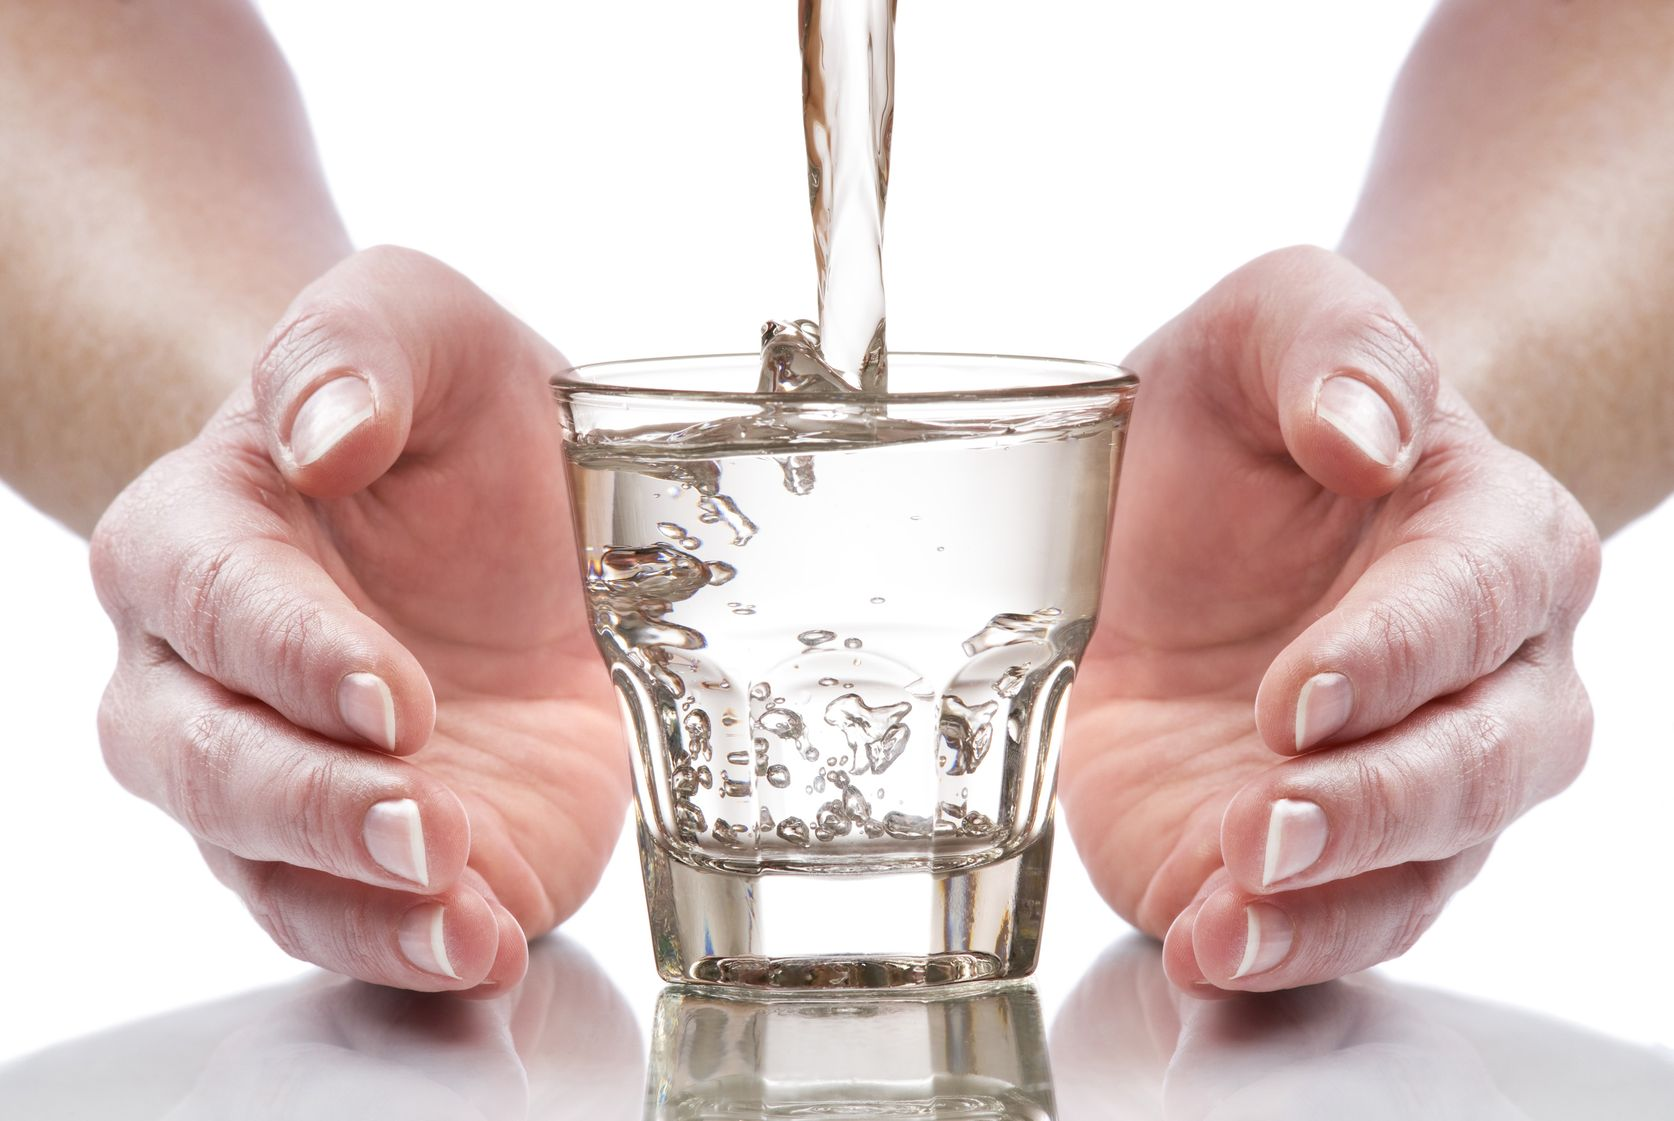 4552541 - glass of fresh water between hands close up